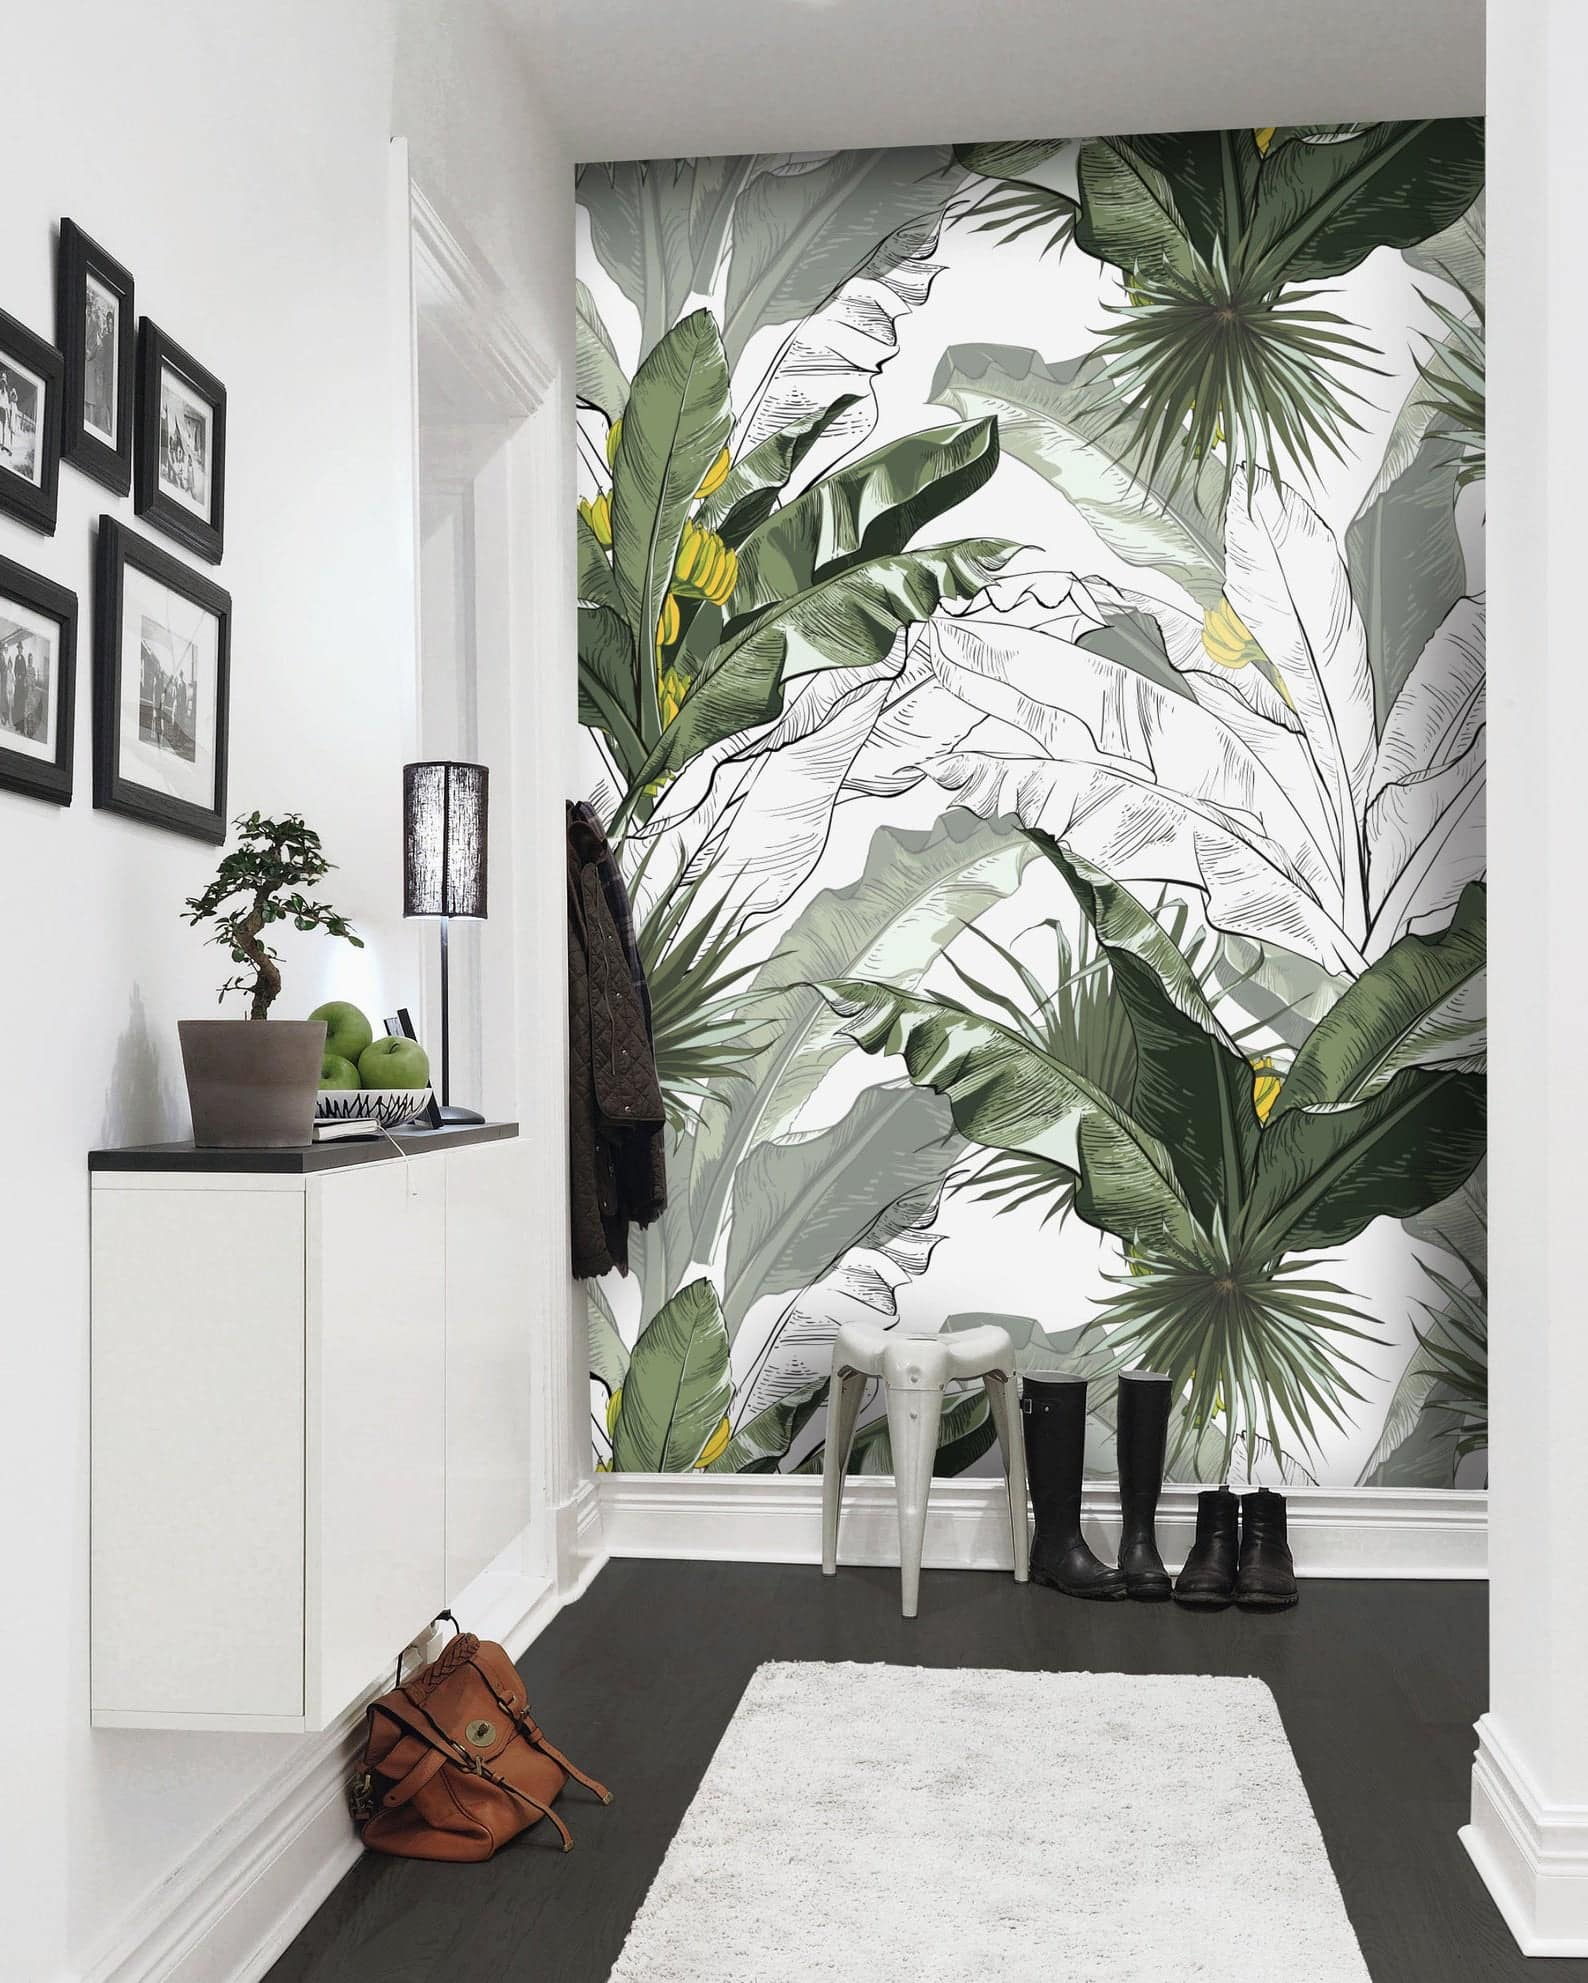 Wallpaper Design Ideas 2020 to Make Interior Elegant. Exotic Savannah greenery for modern living room